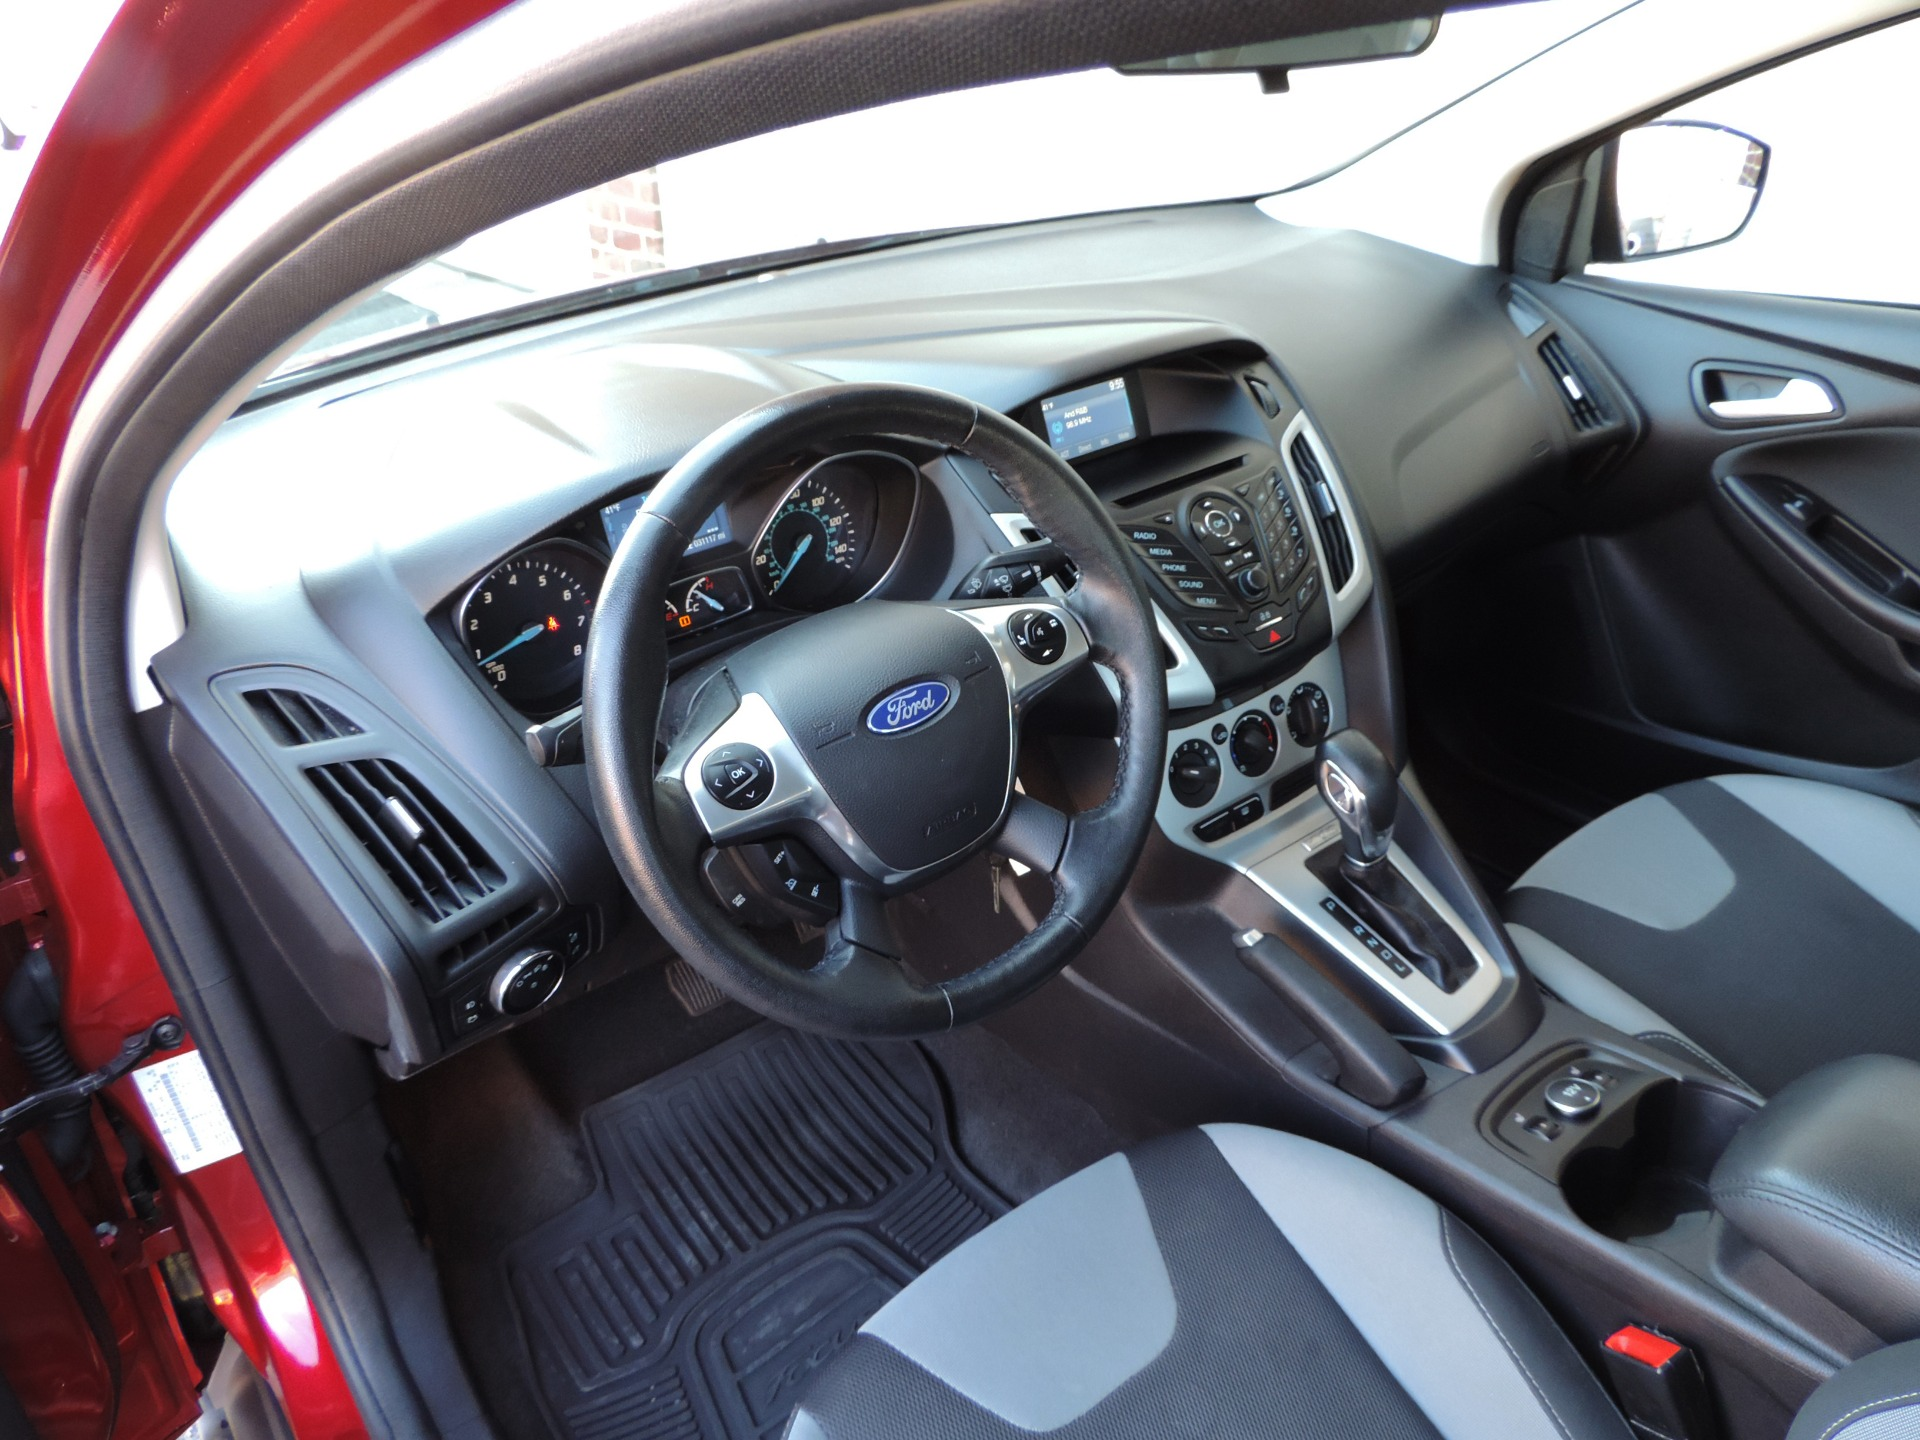 2014 Ford Focus Se Stock 366839 For Sale Near Edgewater Park Nj Antenna Used